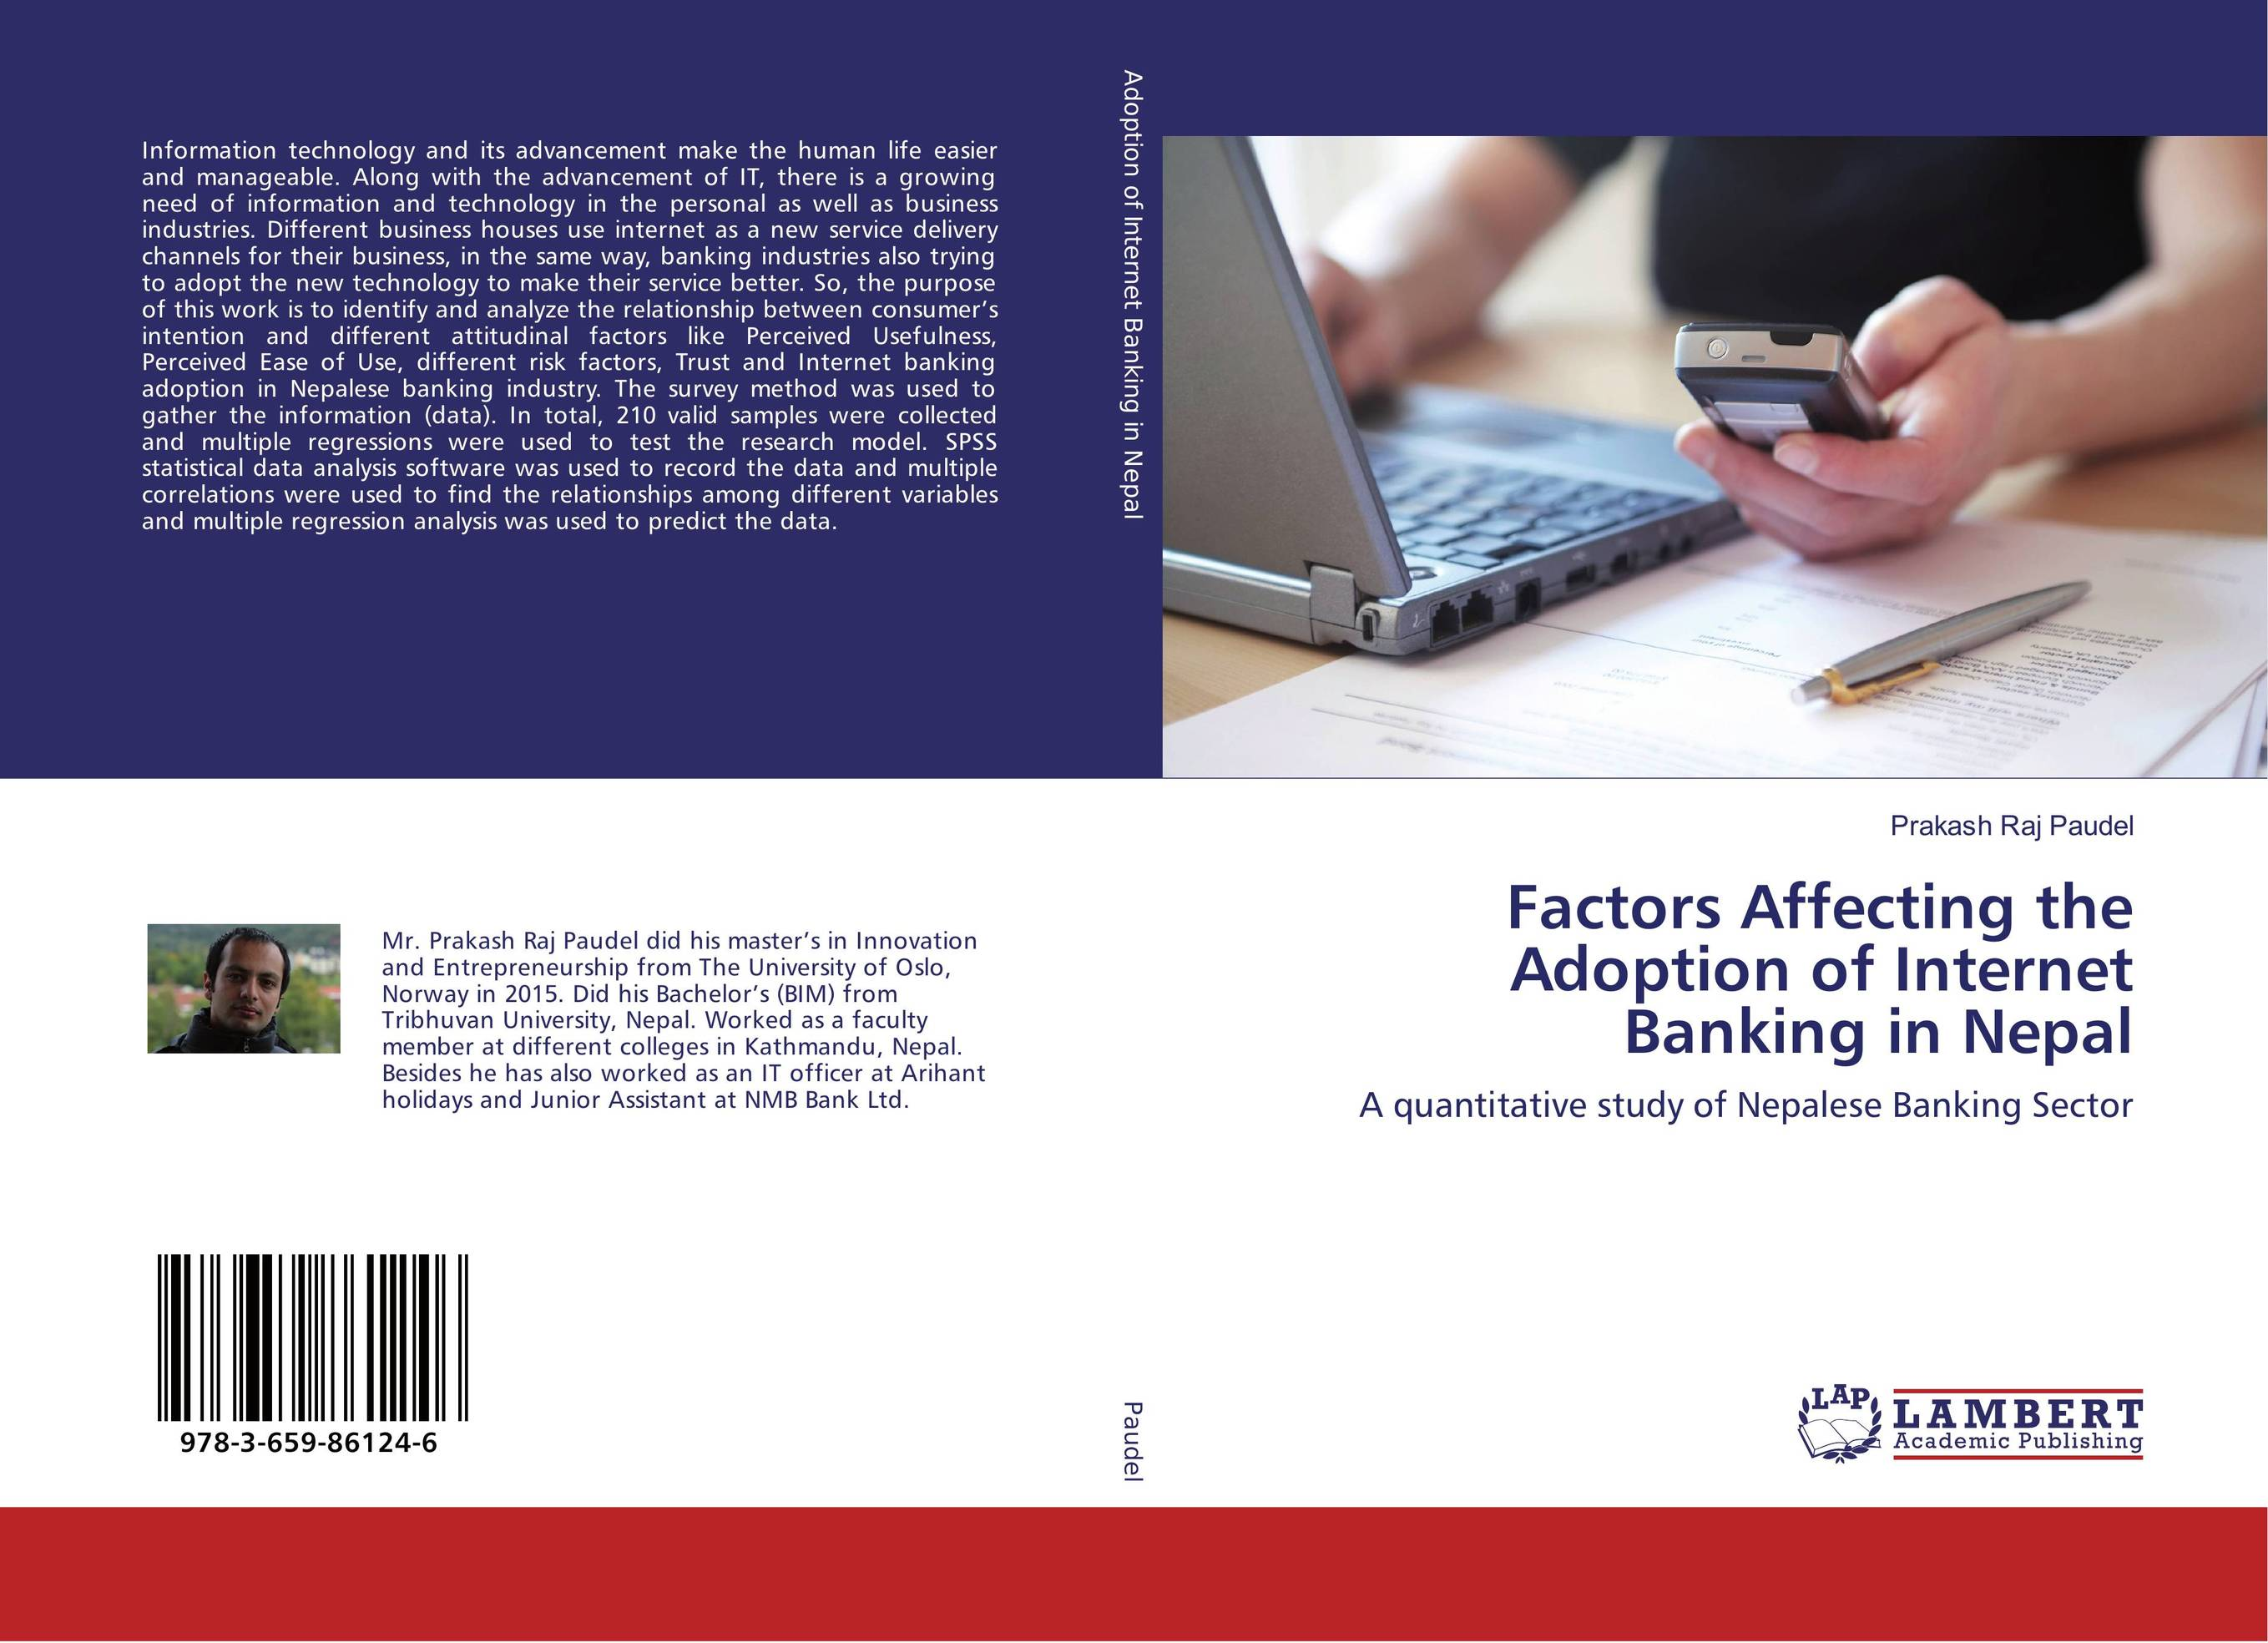 Factors Affecting the Adoption of Internet Banking in Nepal